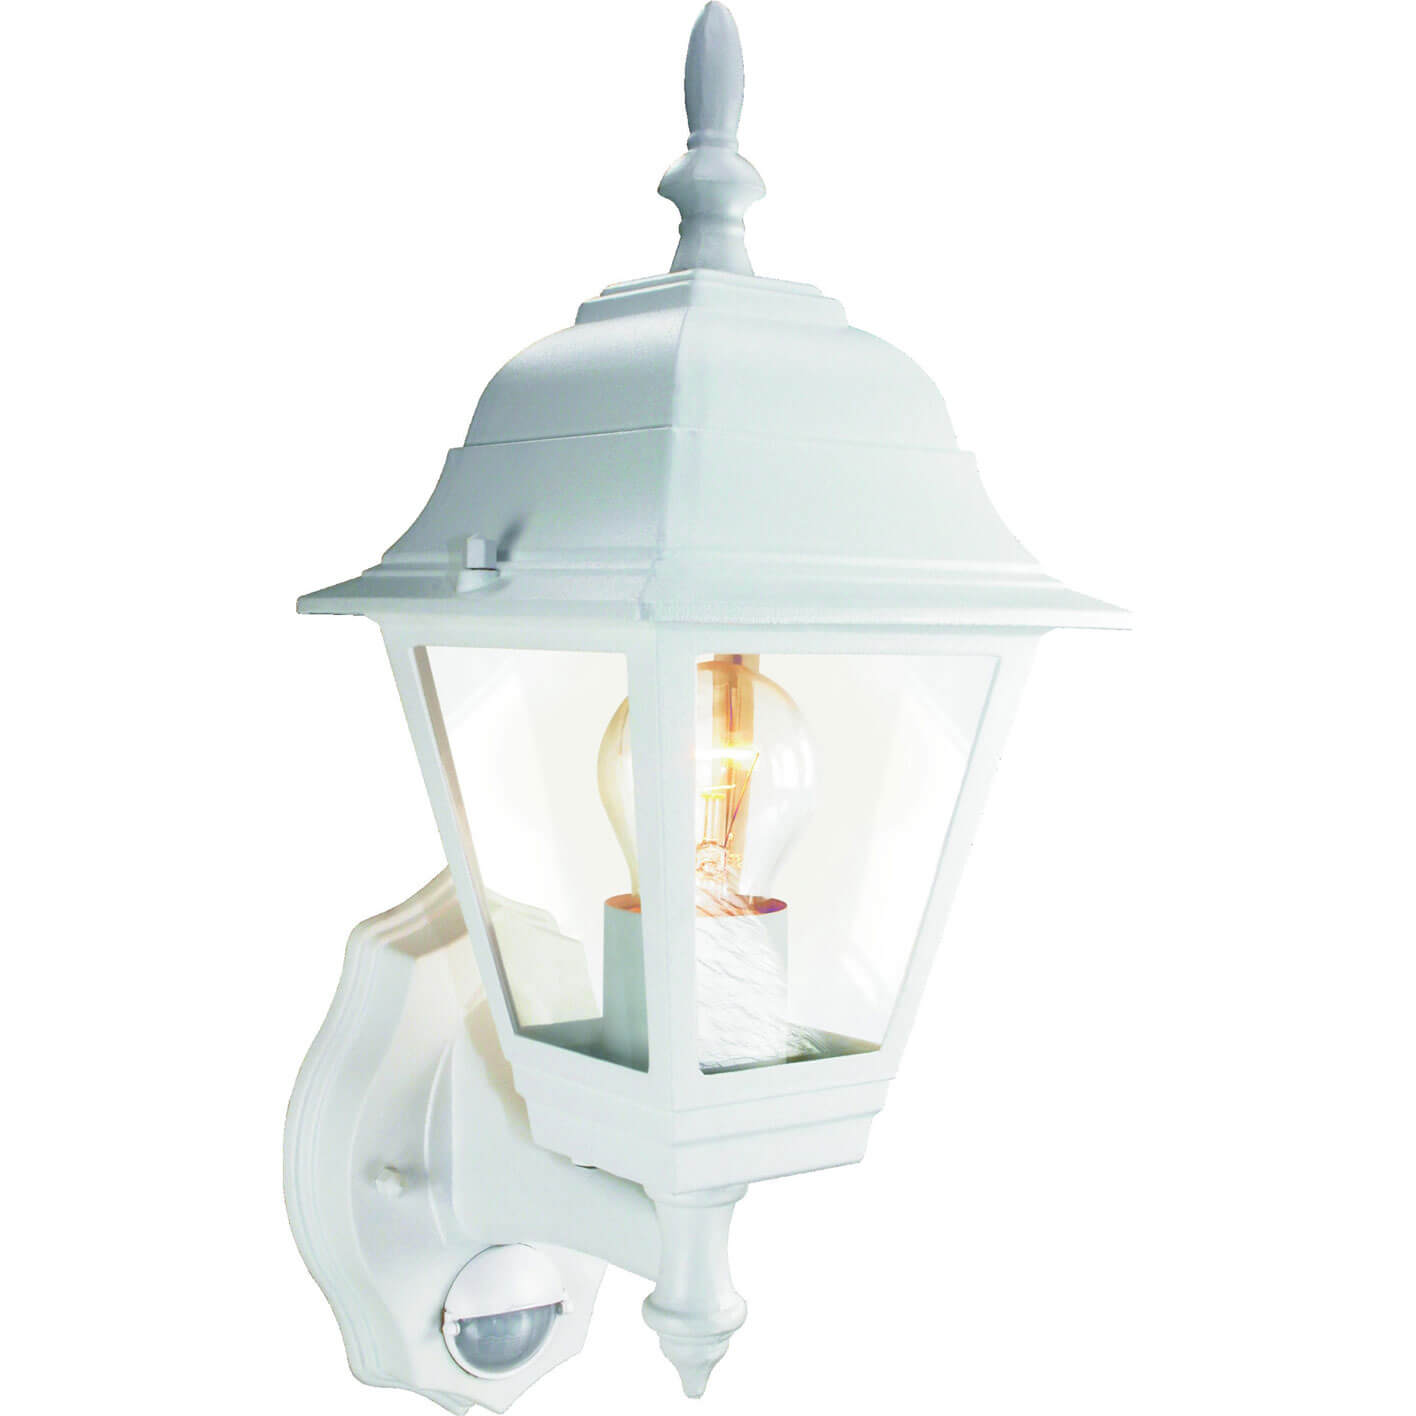 Byron ES94W 4 Panel Coach Lantern with Motion Detector White 24v